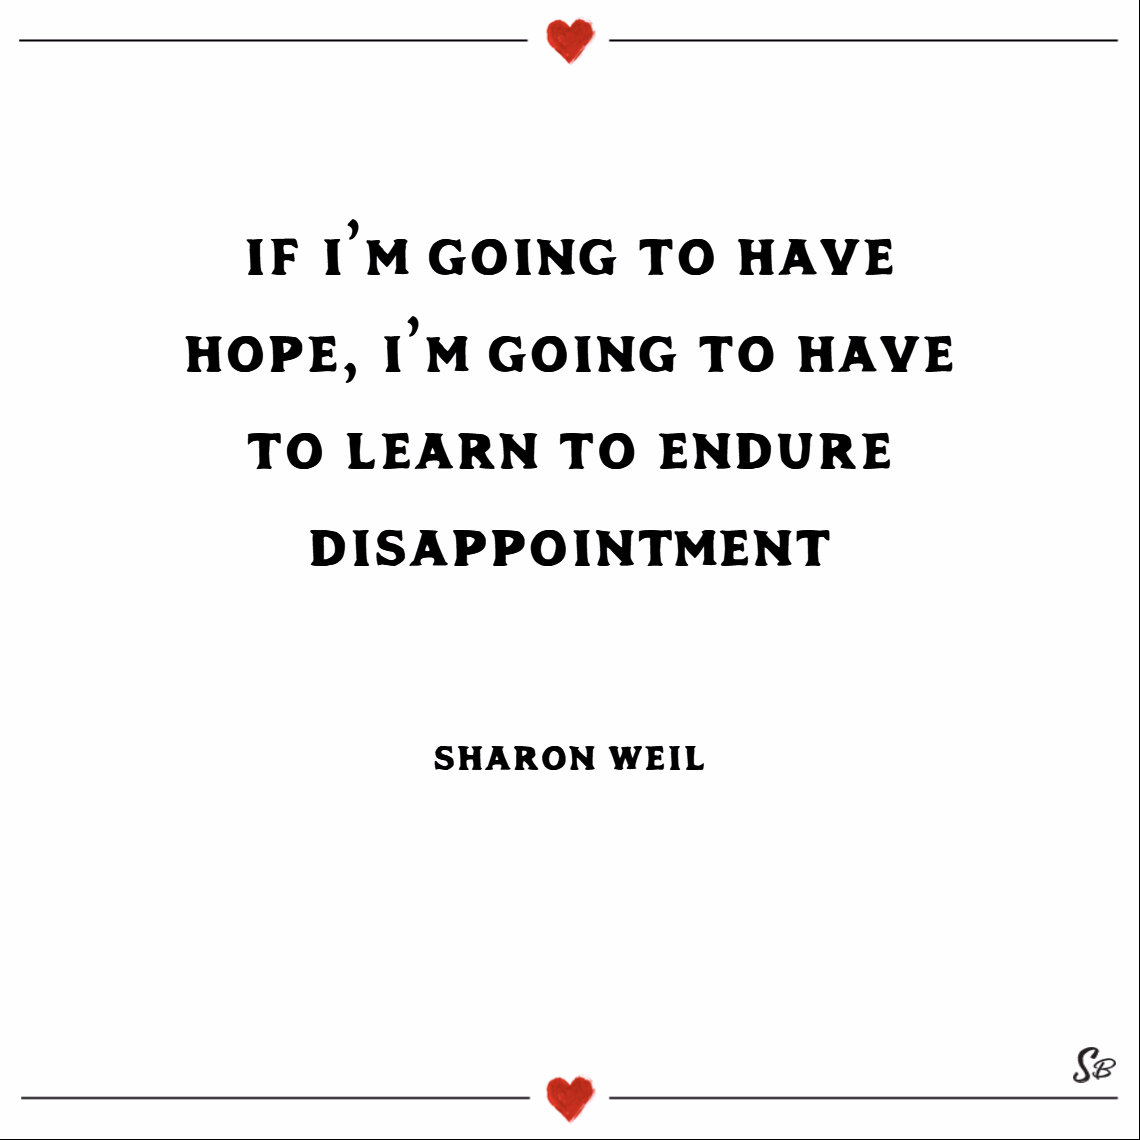 If i'm going to have hope, i'm going to have to learn to endure disappointment. – sharon weil Keep your head up quotes